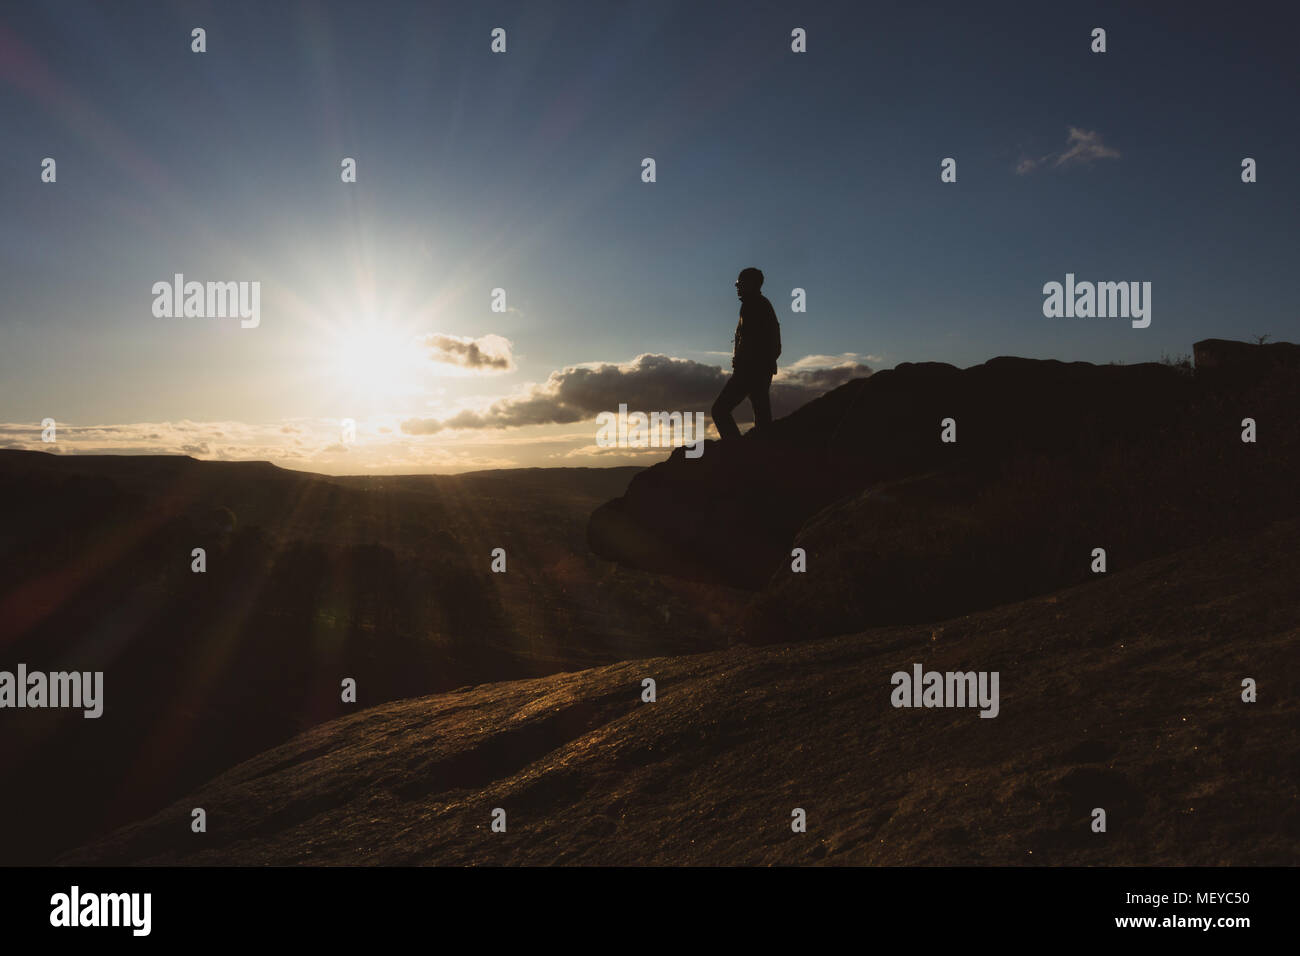 Man standing on the edge of a cliff (Crocodile Rock on Ilkley Moor) watching the sunset, UK - Stock Image